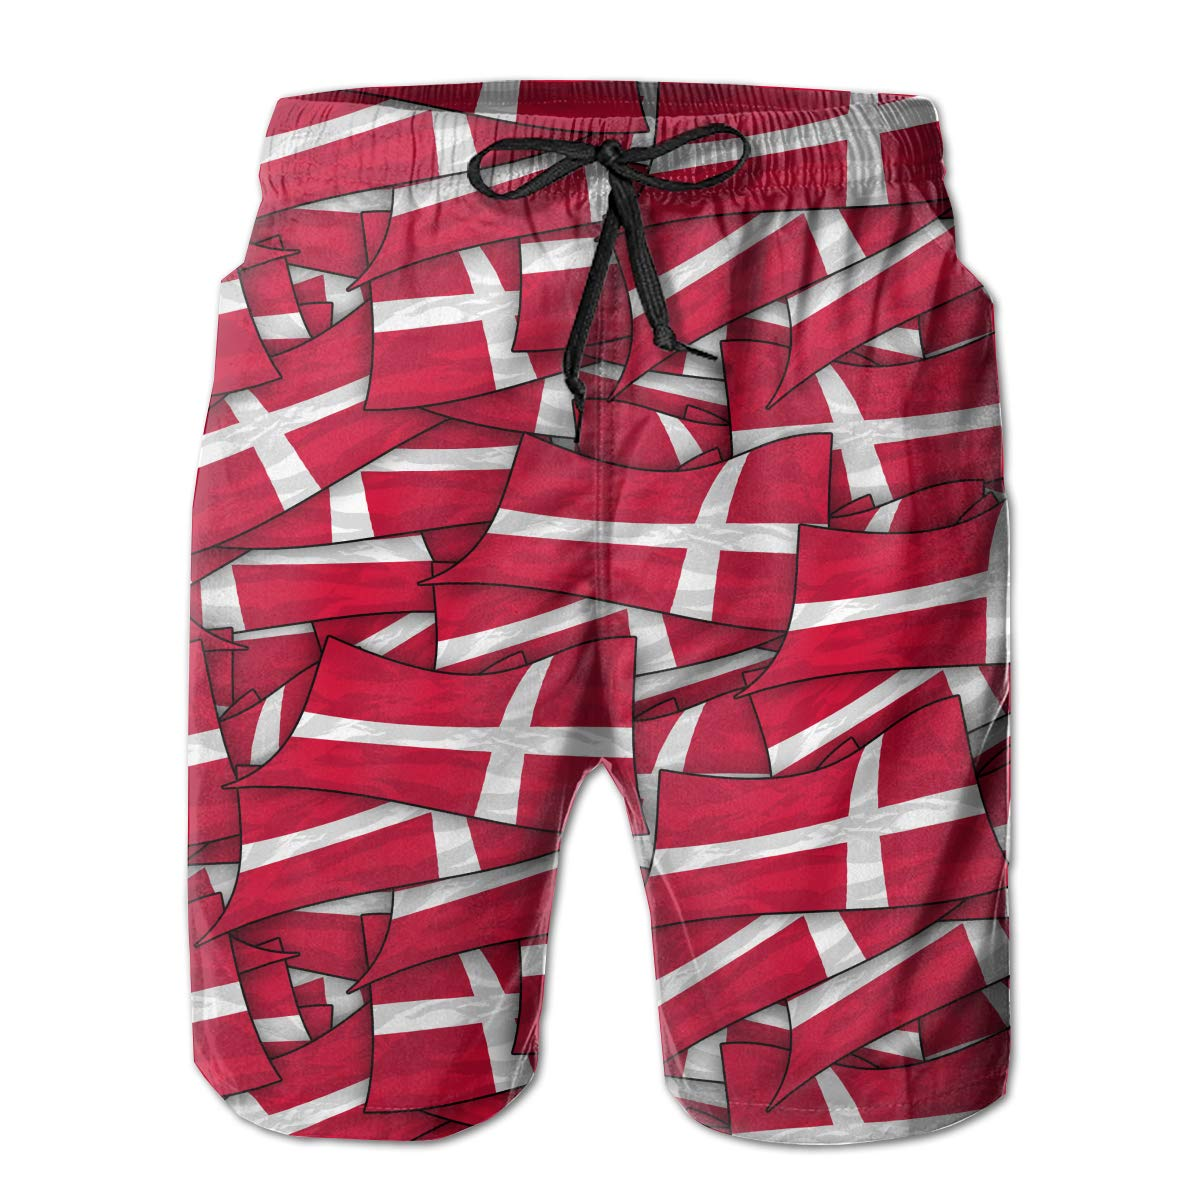 Mens Swim Trunks Denmark Flag Wave Collage Quick Dry Beach Board Shorts with Mesh Lining